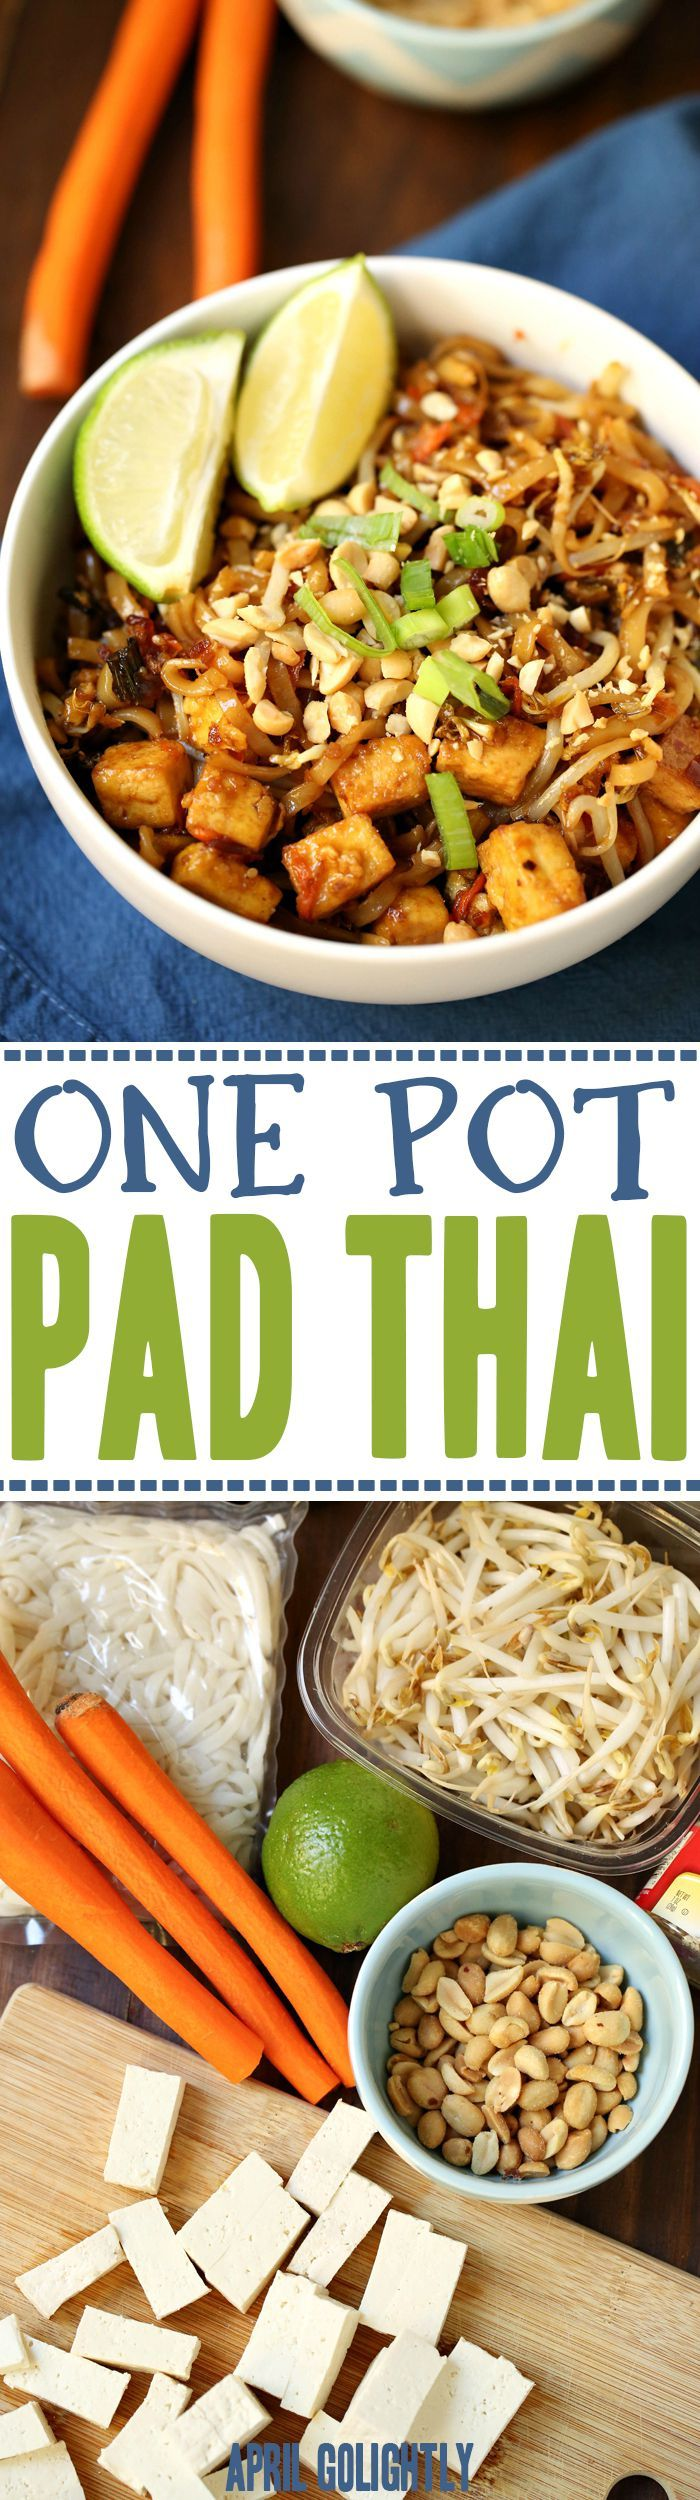 272 best homemade take out food images on pinterest 30th deviled easy one pot pad thai recipe to make quickly for dinner with less dishes and healthy forumfinder Choice Image